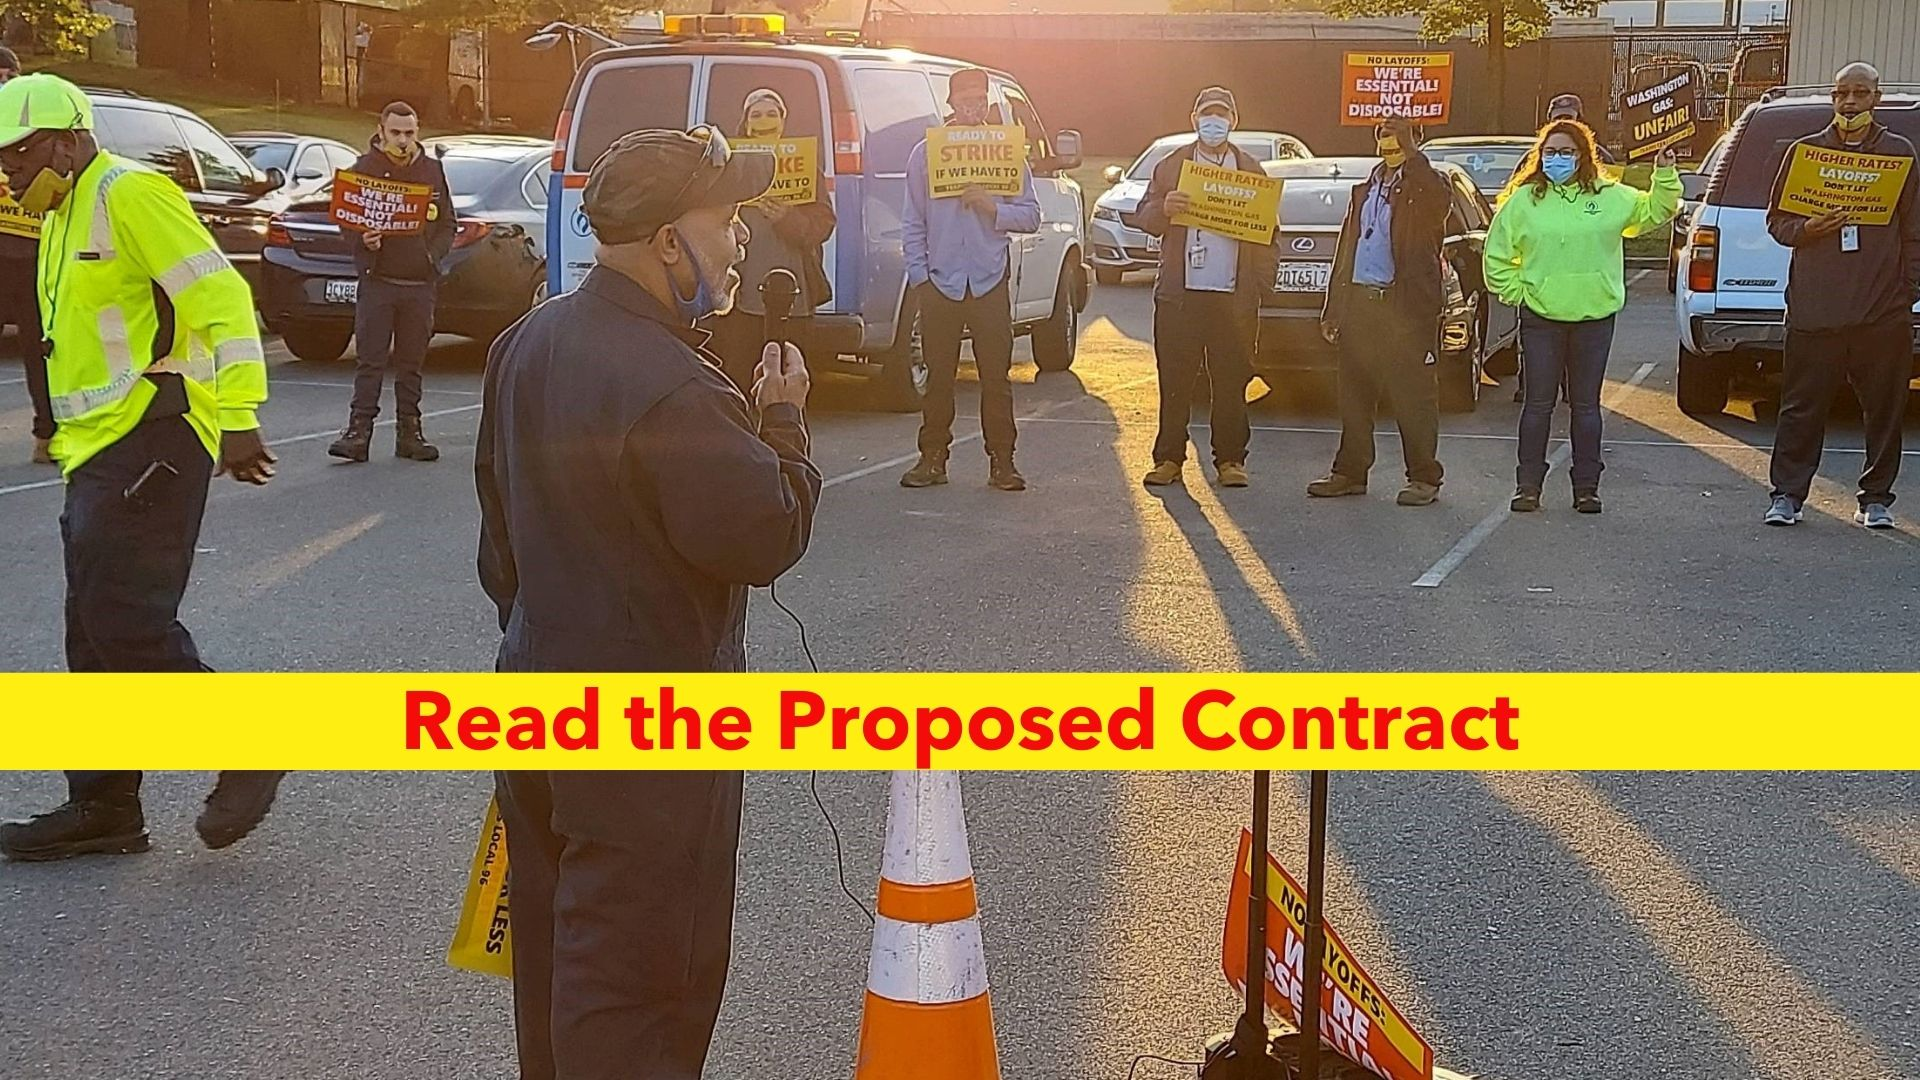 CONTRACT_PROPOSAL_FOR_MEMBER_REVIEW(1)_thumb.jpg